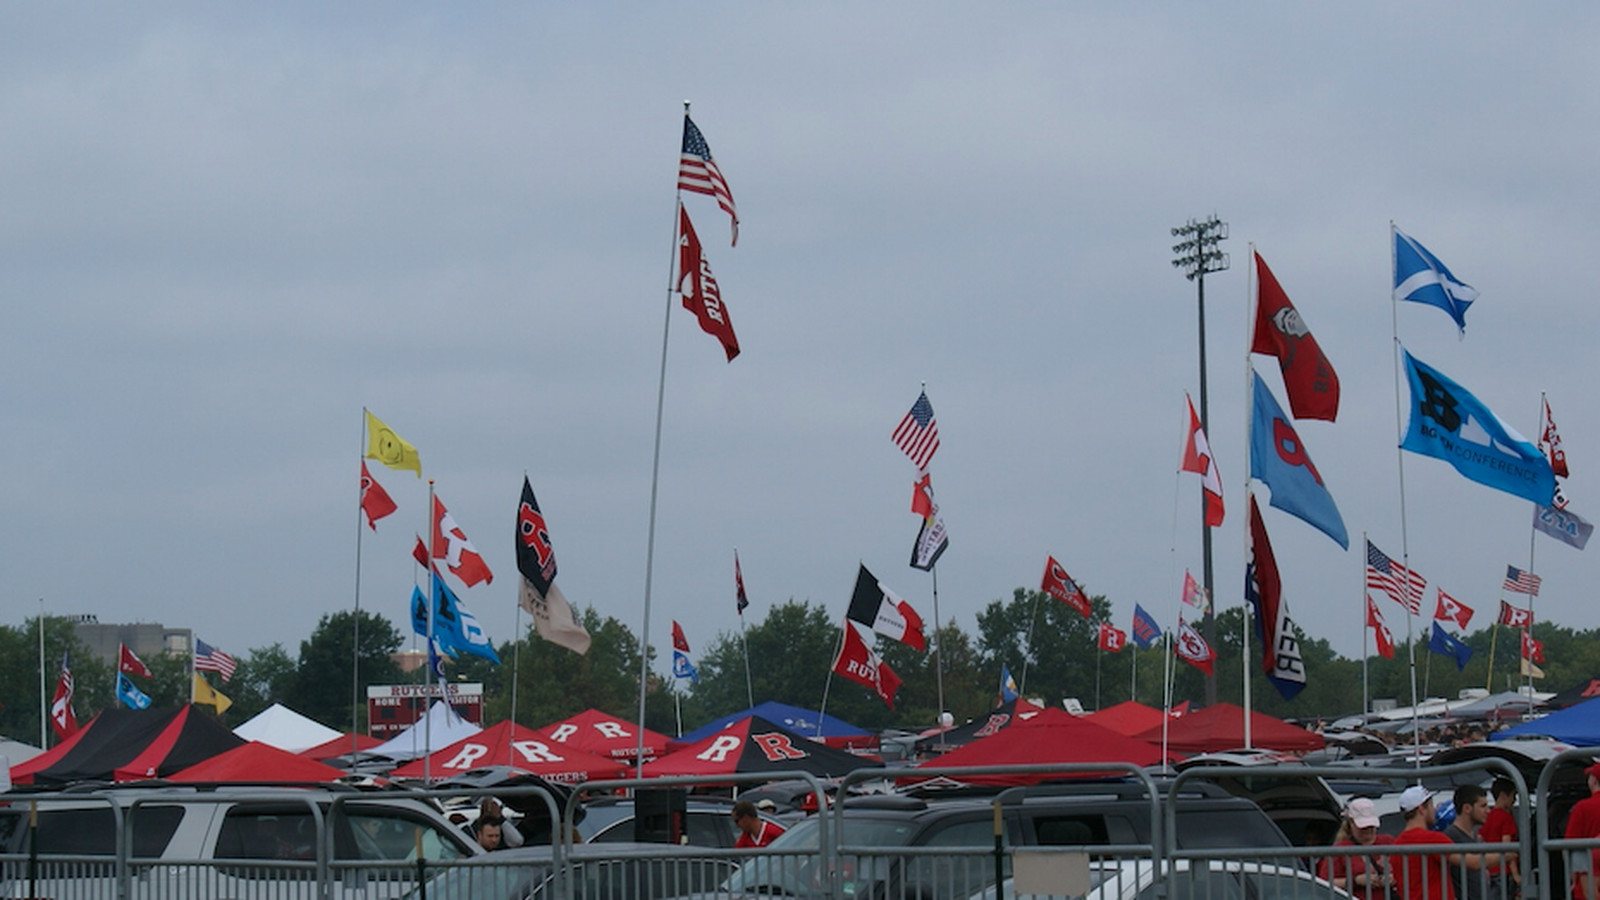 Tailgate_flags.0.0